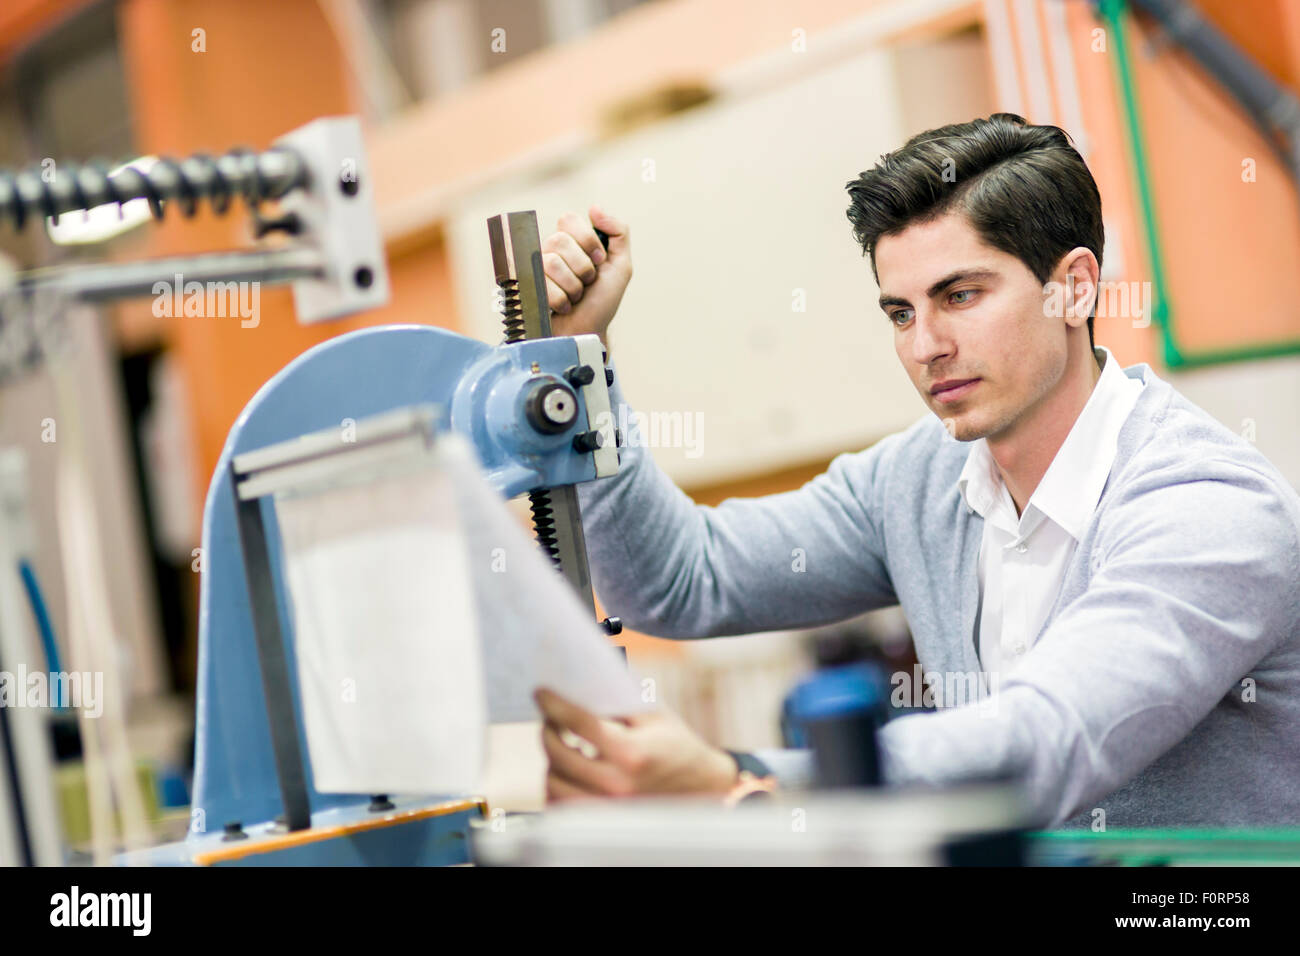 Young student working on a science project on a machine - Stock Image